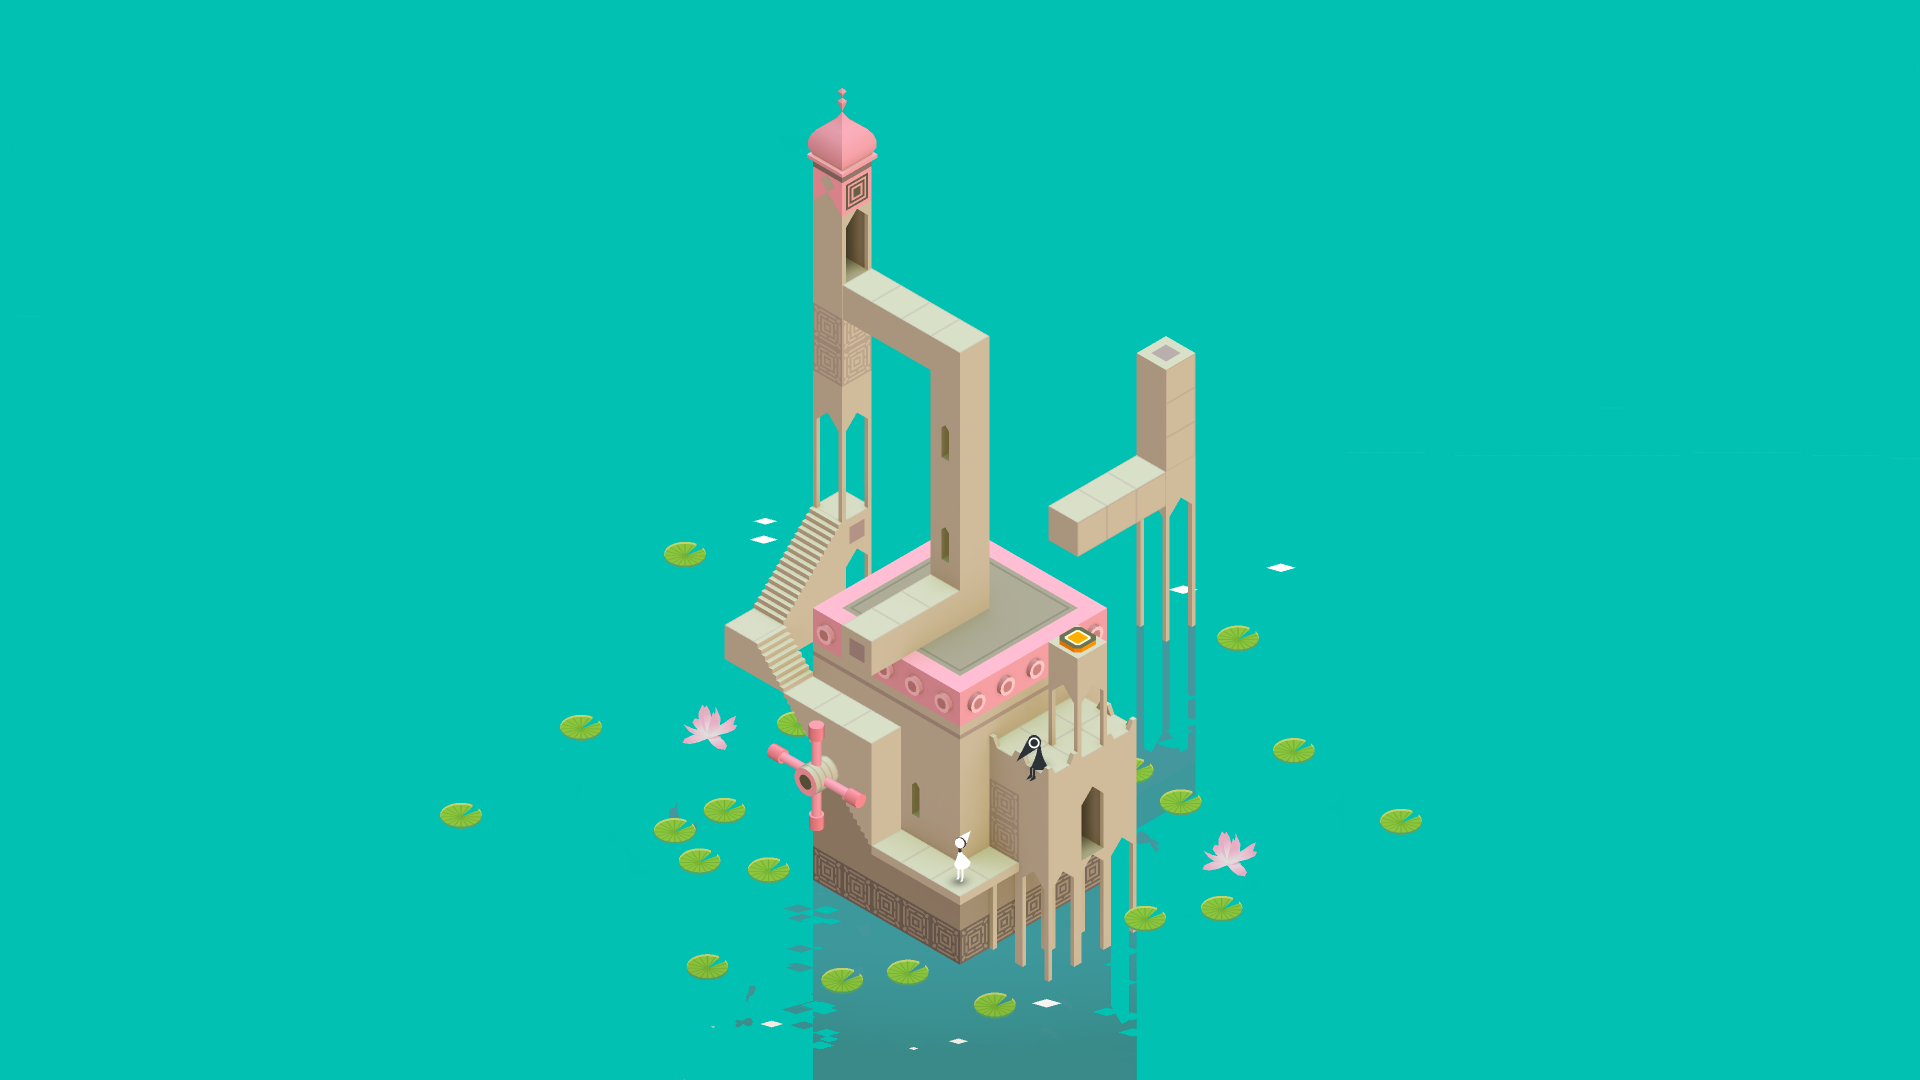 Monument Valley Find More Nerdy Iphone Android Wallpapers And Backgrounds At Prettywallpaper Monument Valley Game Monument Valley Valley Game